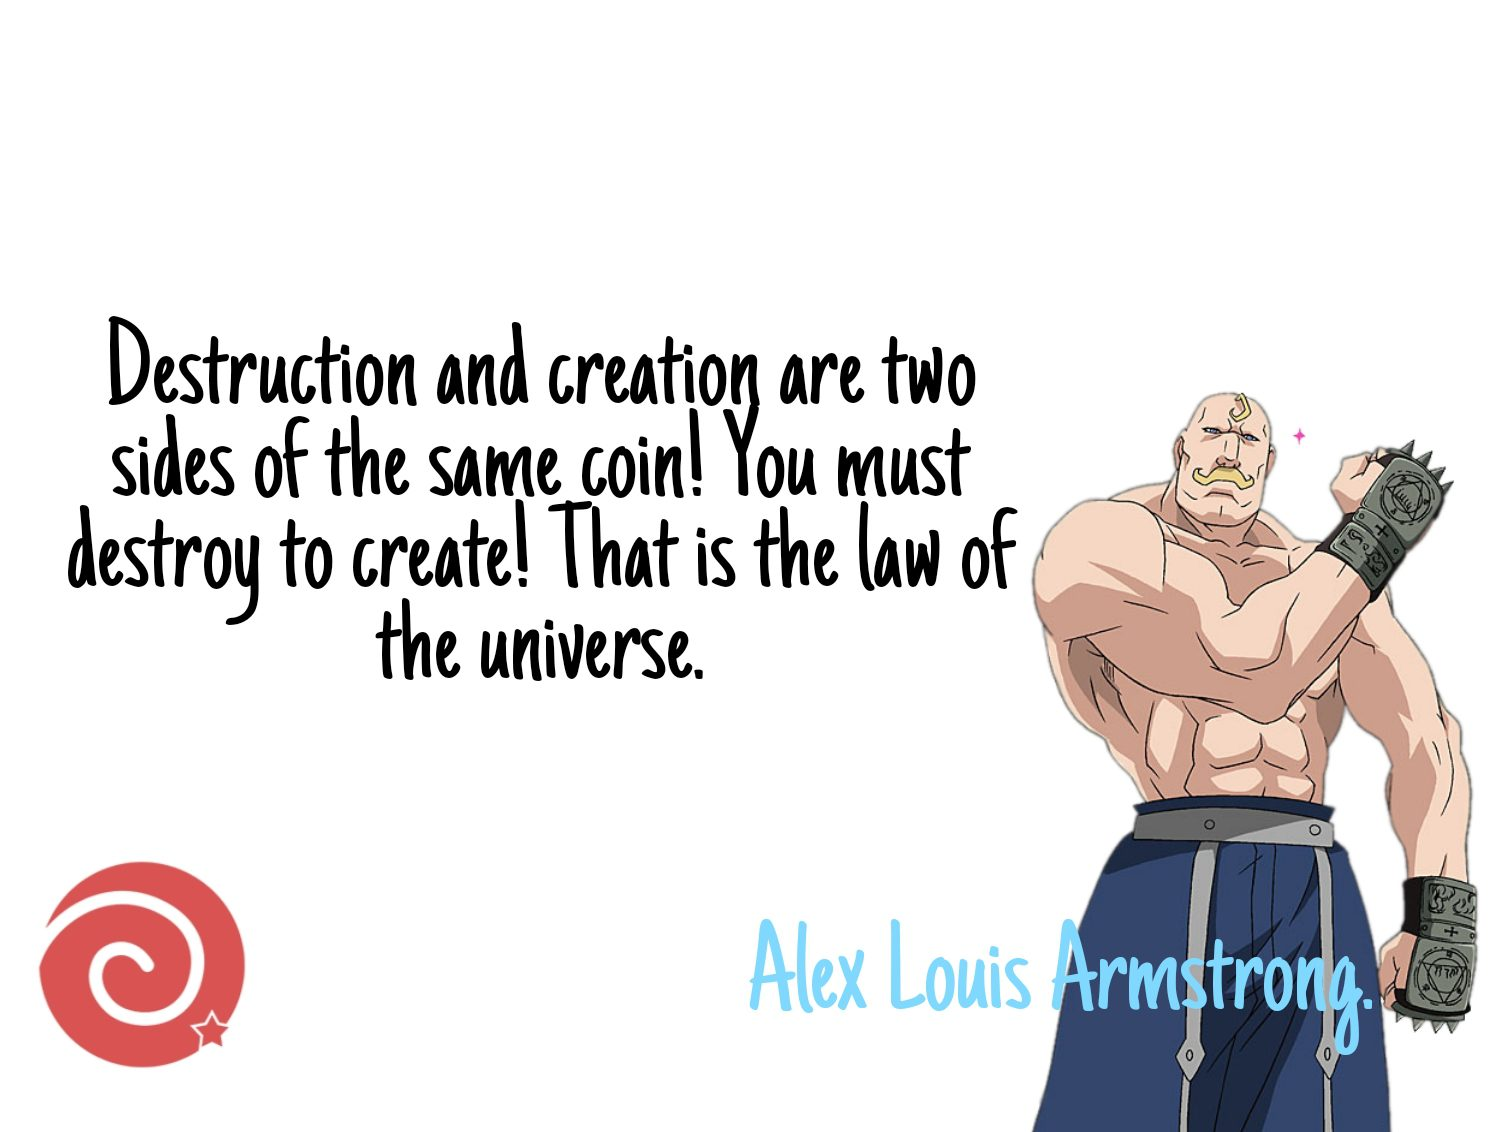 Alex Louis Armstrong Quotes from Fullmetal Alchemist